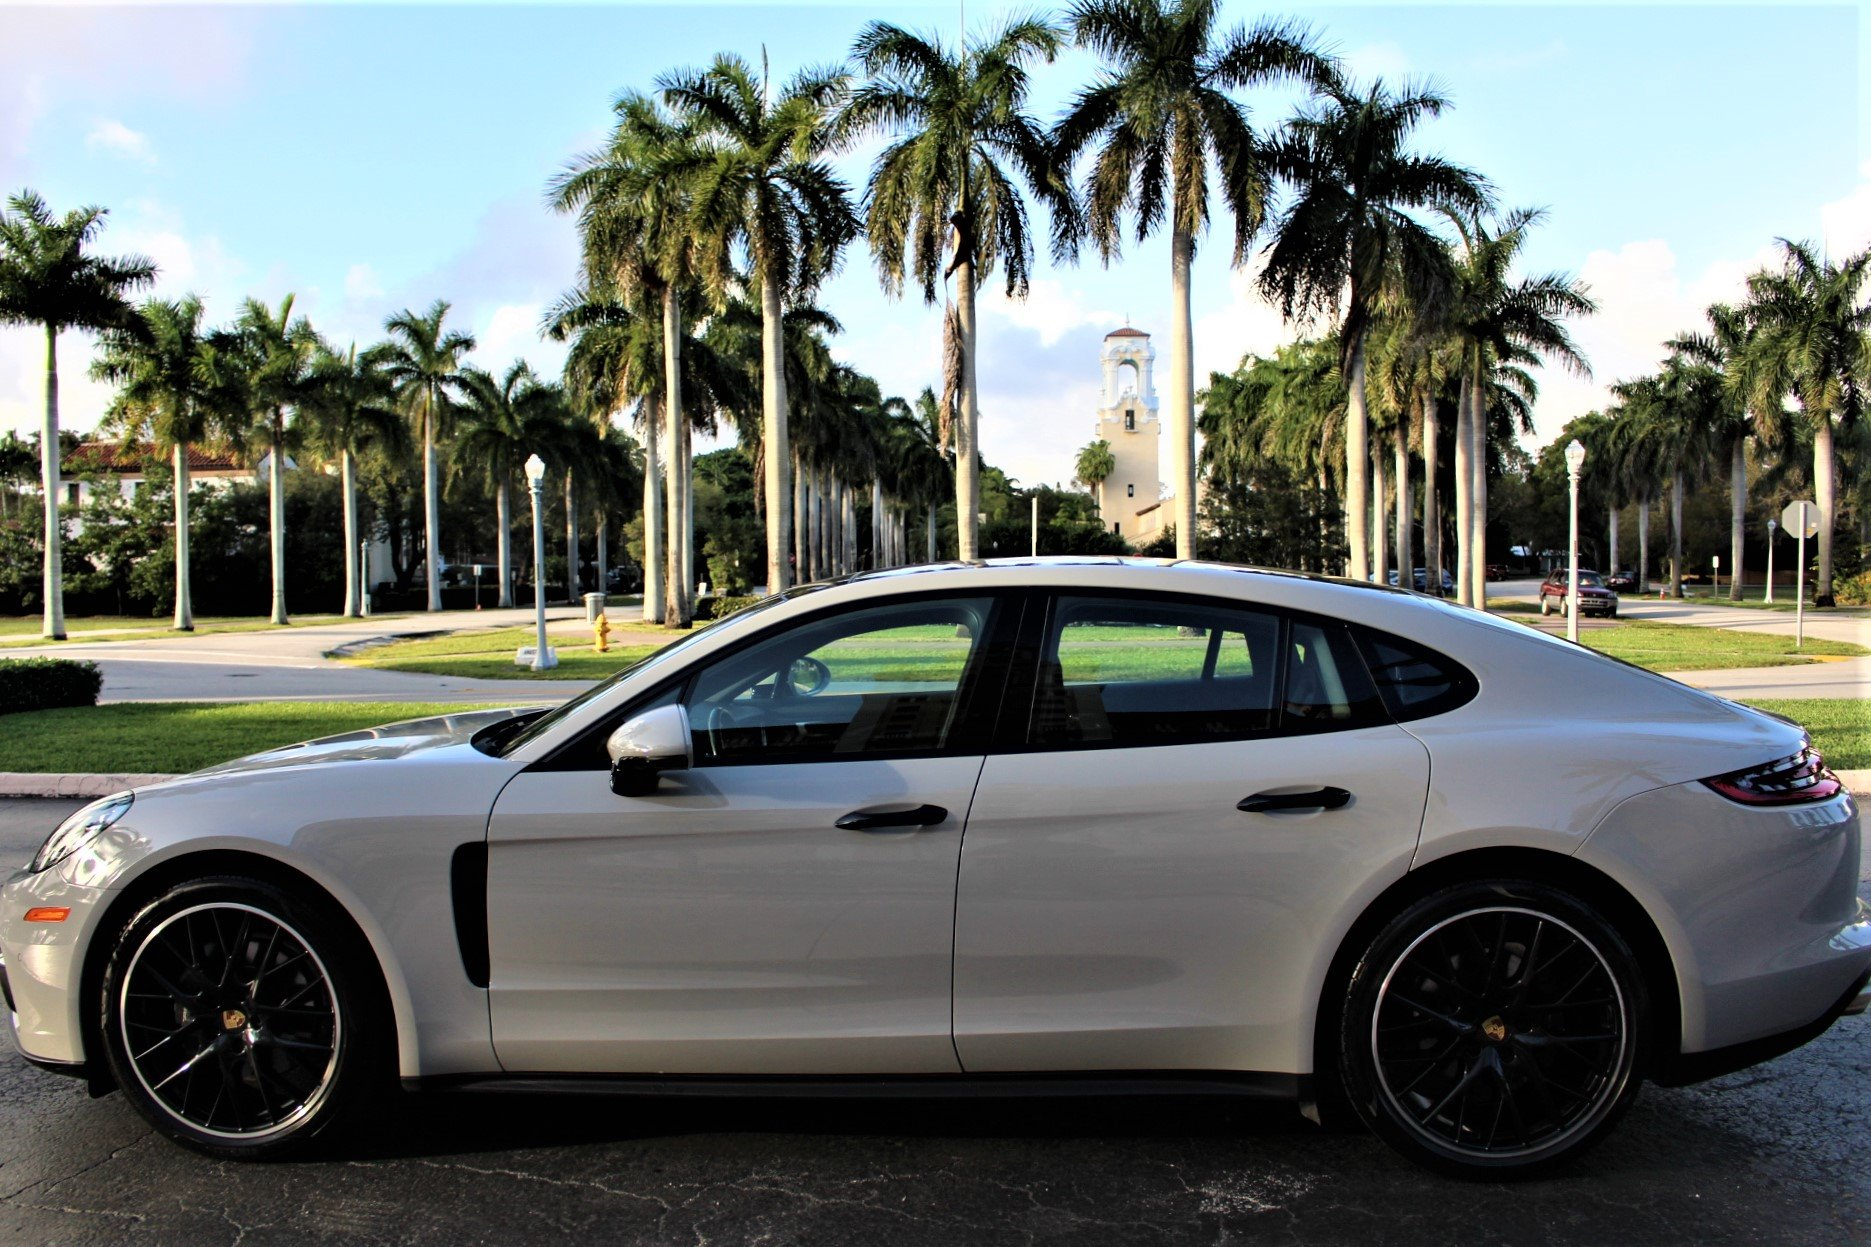 Used 2017 Porsche Panamera for sale Sold at The Gables Sports Cars in Miami FL 33146 2